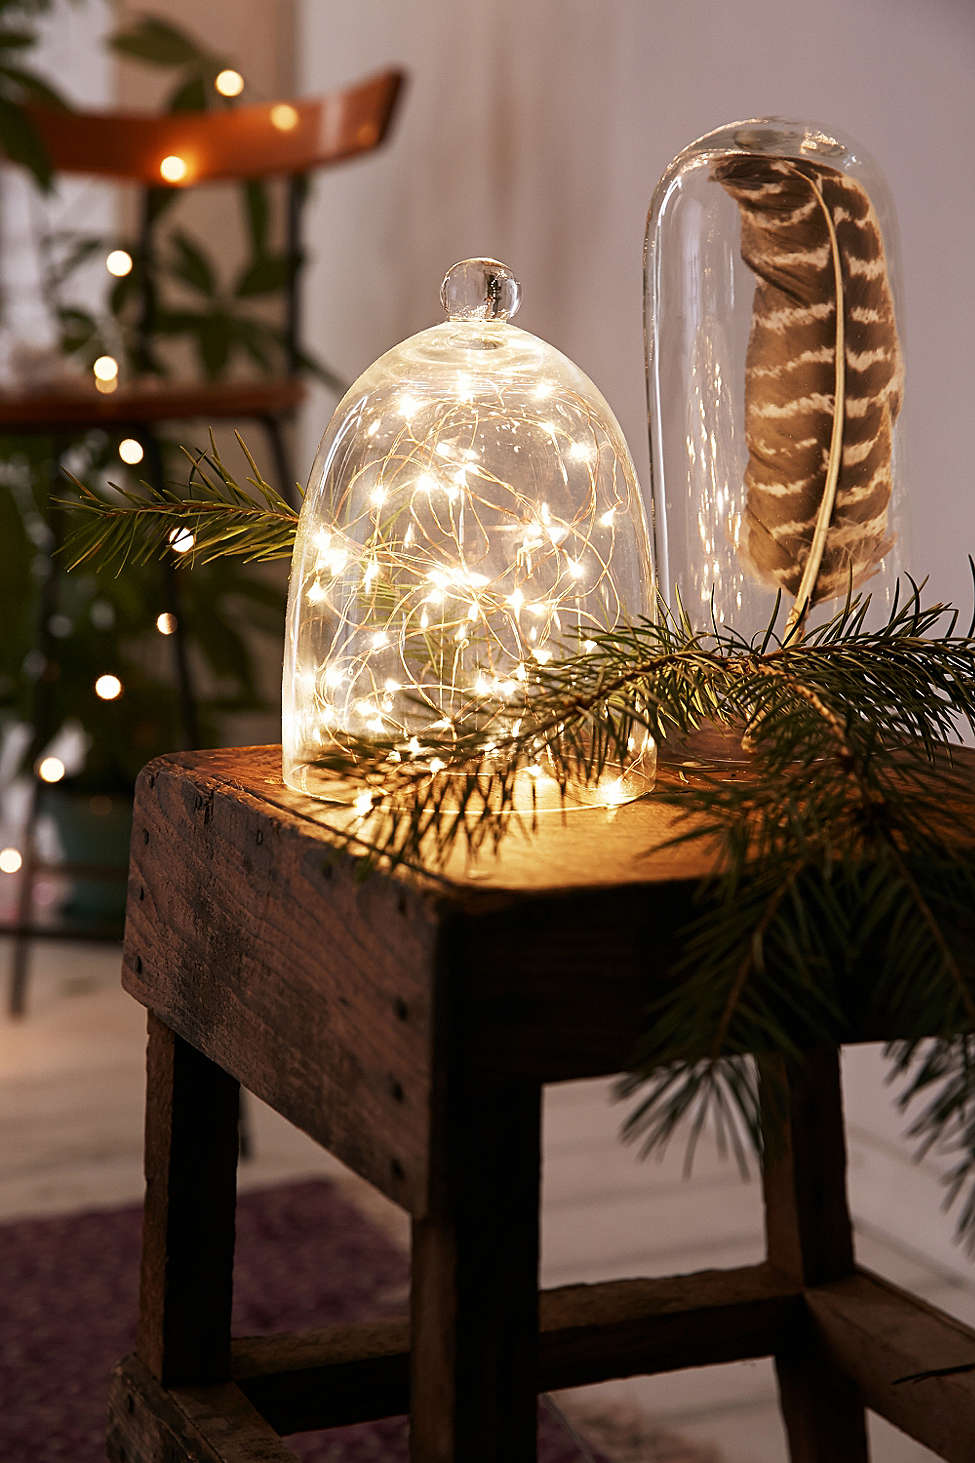 A terrarium is storing glowing holiday decoration string lights on a wooden table in a small apartment.